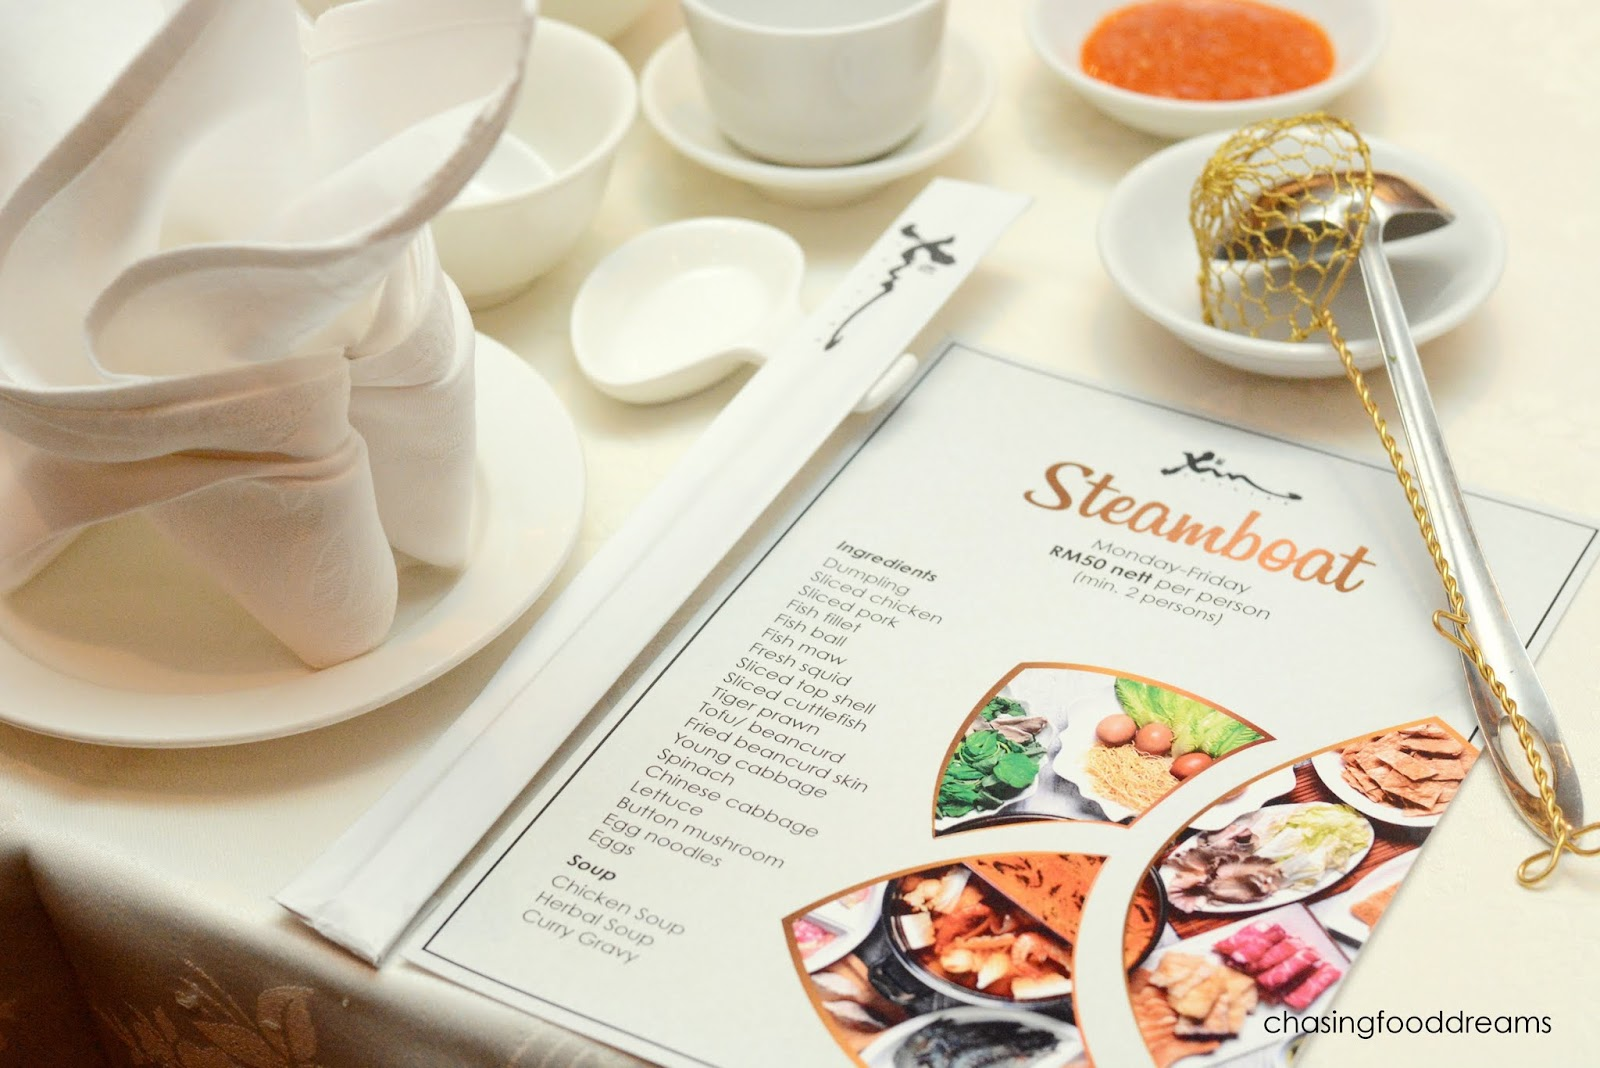 CHASING FOOD DREAMS: Steamboat Dinner @ Xin Cuisine, Concorde Hotel ...